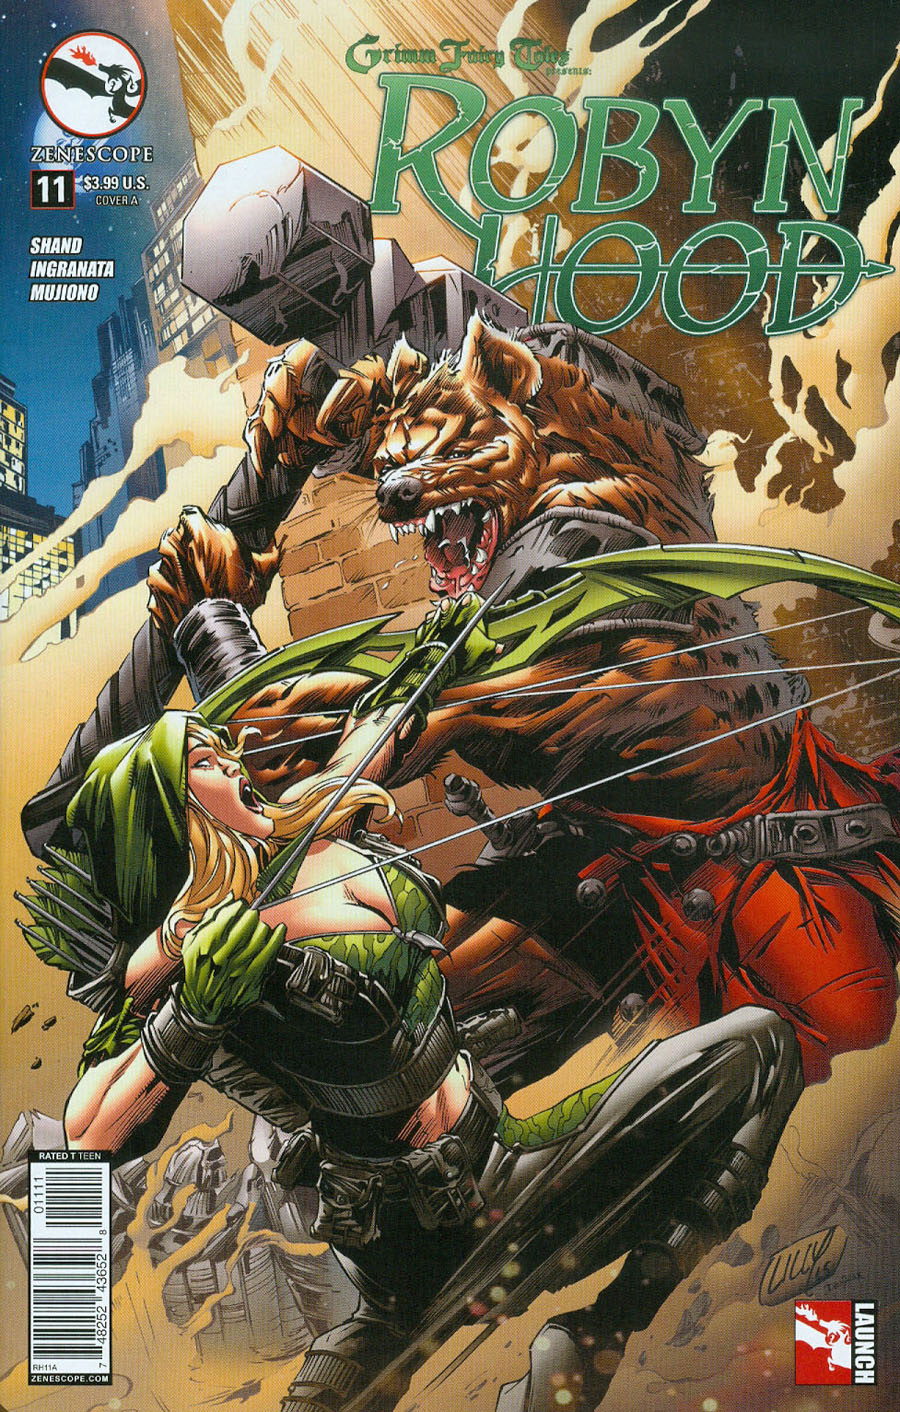 Grimm Fairy Tales Presents Robyn Hood Vol 2 #11 Cover A Mike Lilly